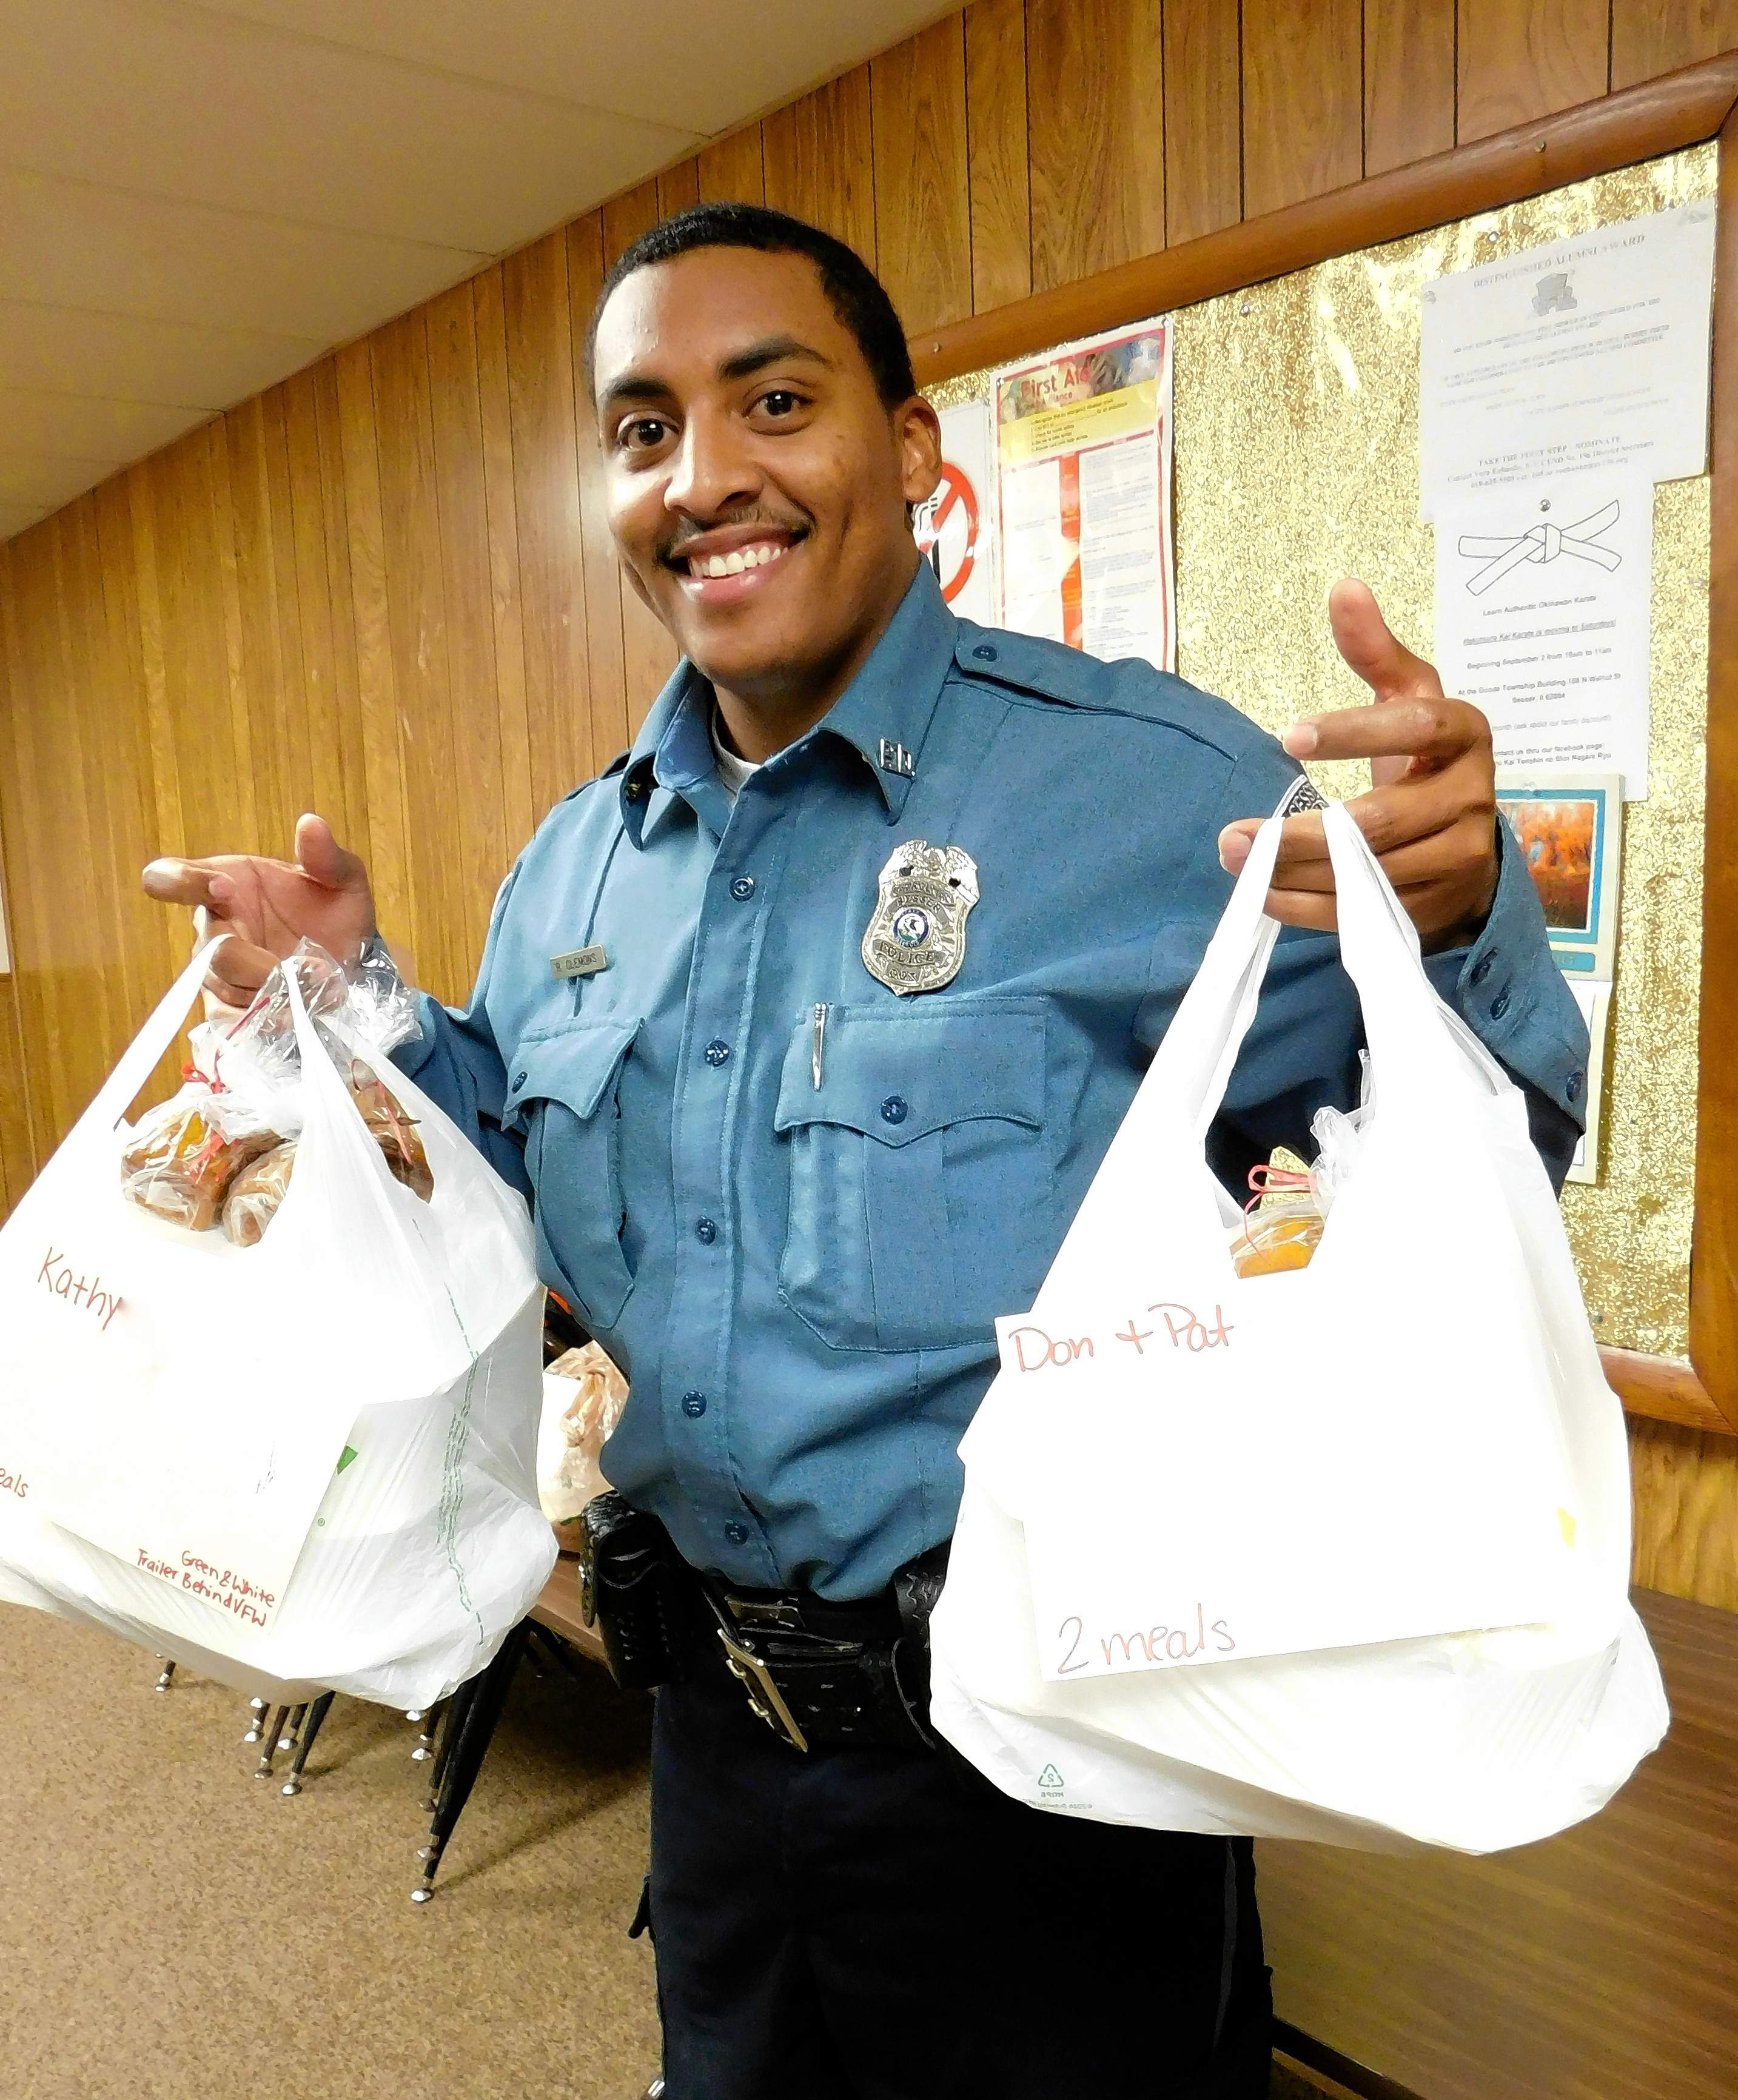 """Sesser police officer Richard Clemons loads up with meals to deliver to those who can't get out.  """"I love giving back to my community,"""" he said."""